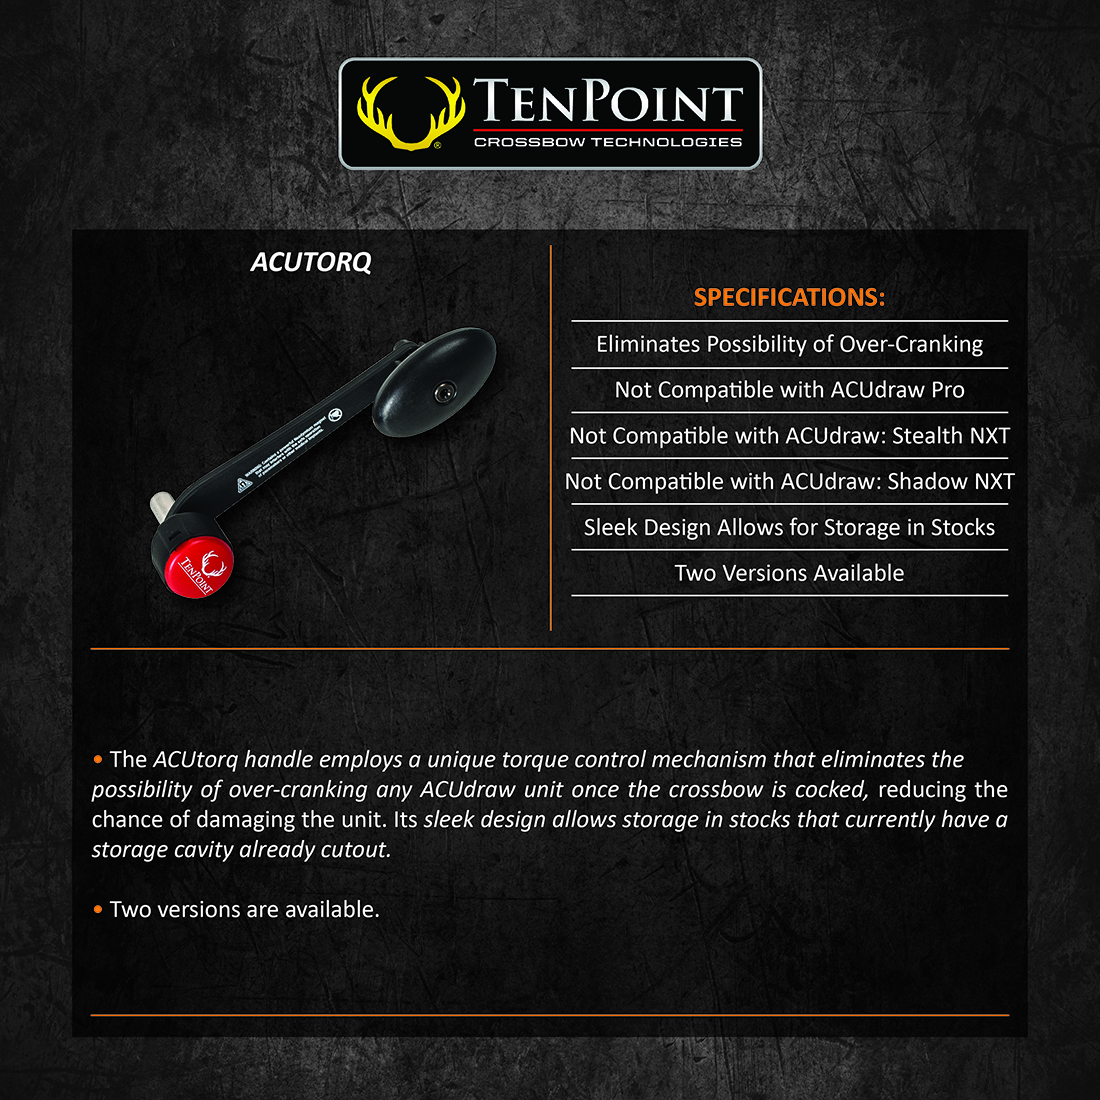 TenPoint_ACUtorq_RedCap_Product_Description